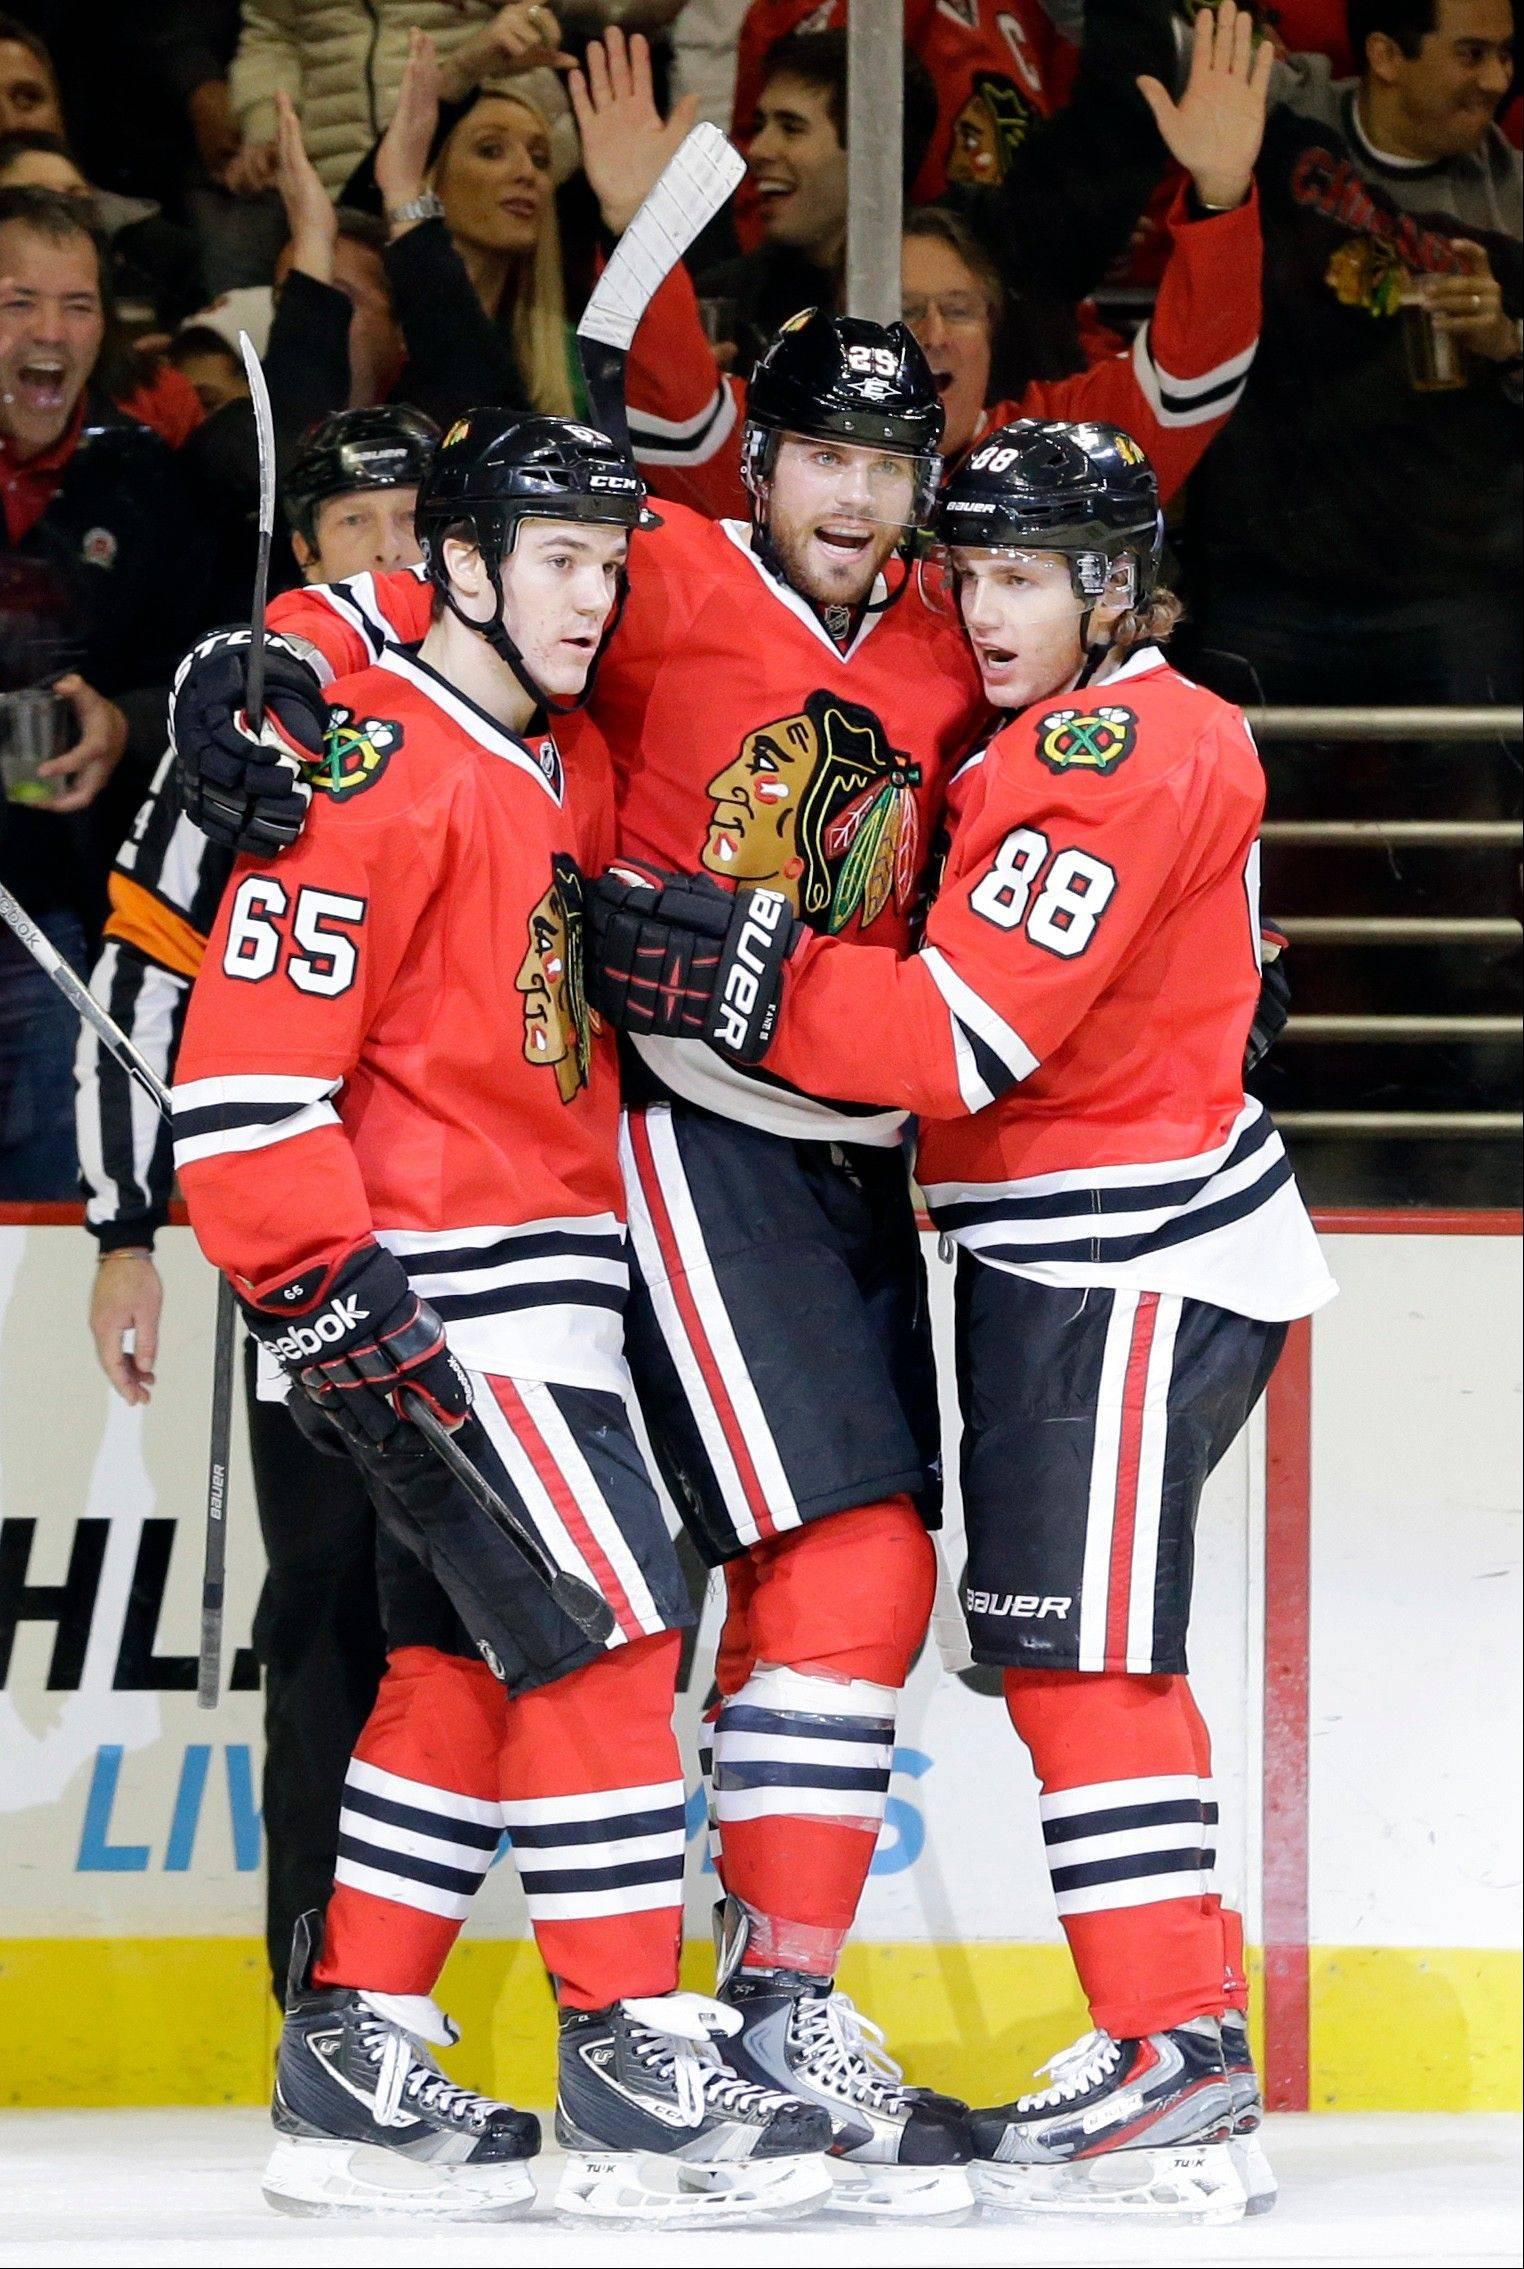 Chicago Blackhawks' Viktor Stalberg, center, celebrates with Andrew Shaw, left, and Patrick Kane after scoring a goal during the second period of an NHL hockey game against the San Jose Sharks in Chicago, Friday, Feb. 22, 2013.